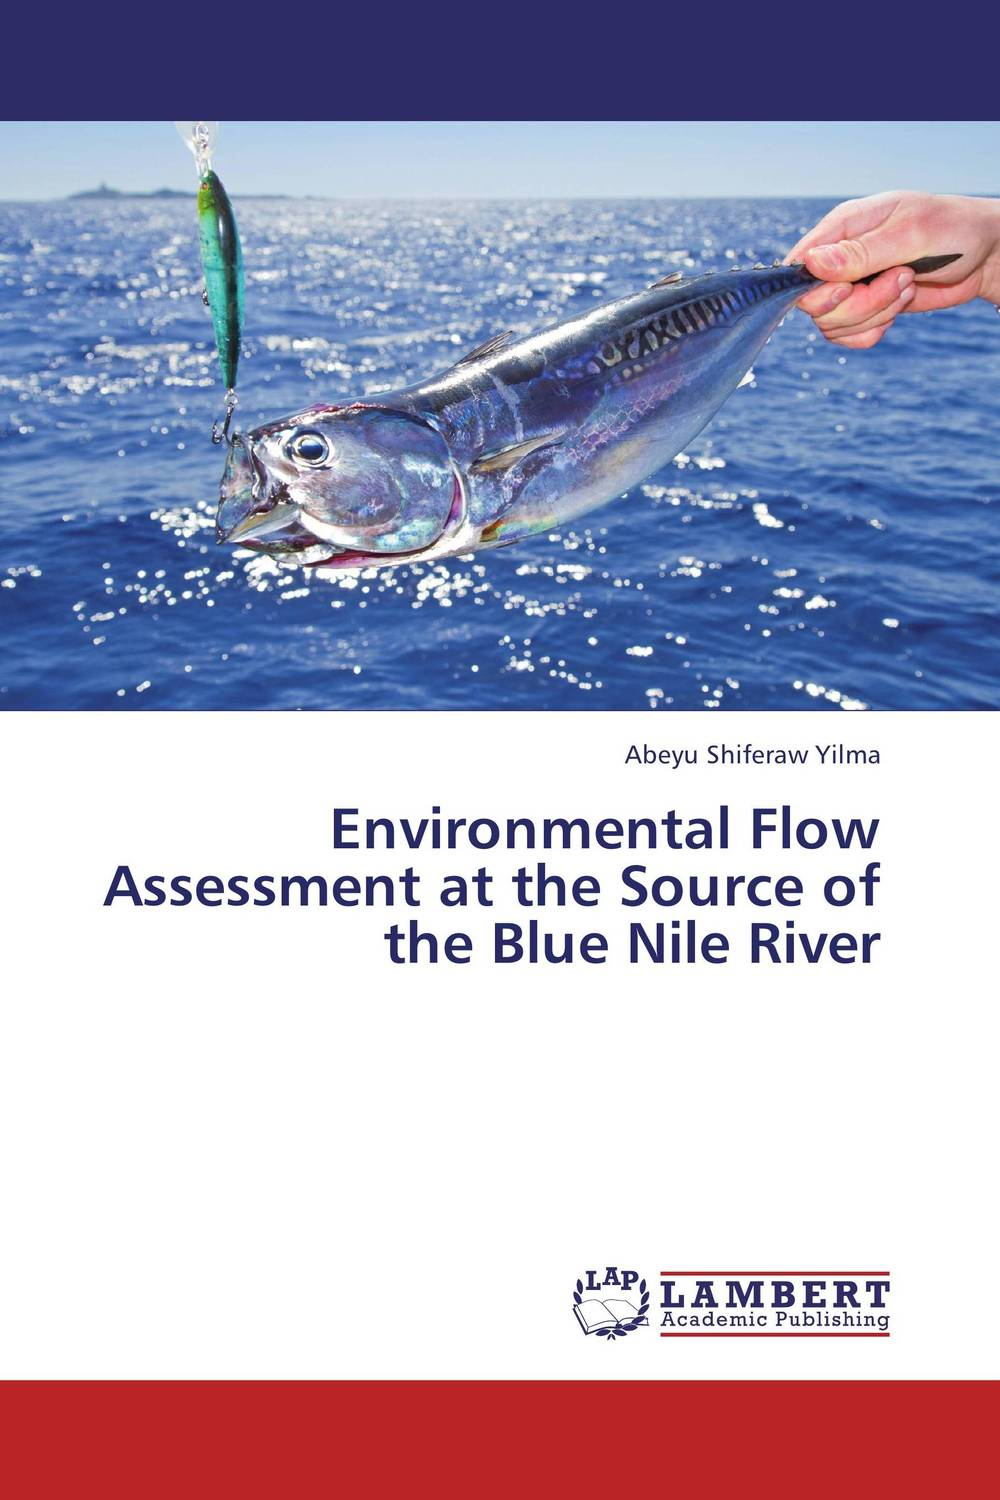 купить Environmental Flow Assessment at the Source of the Blue Nile River недорого